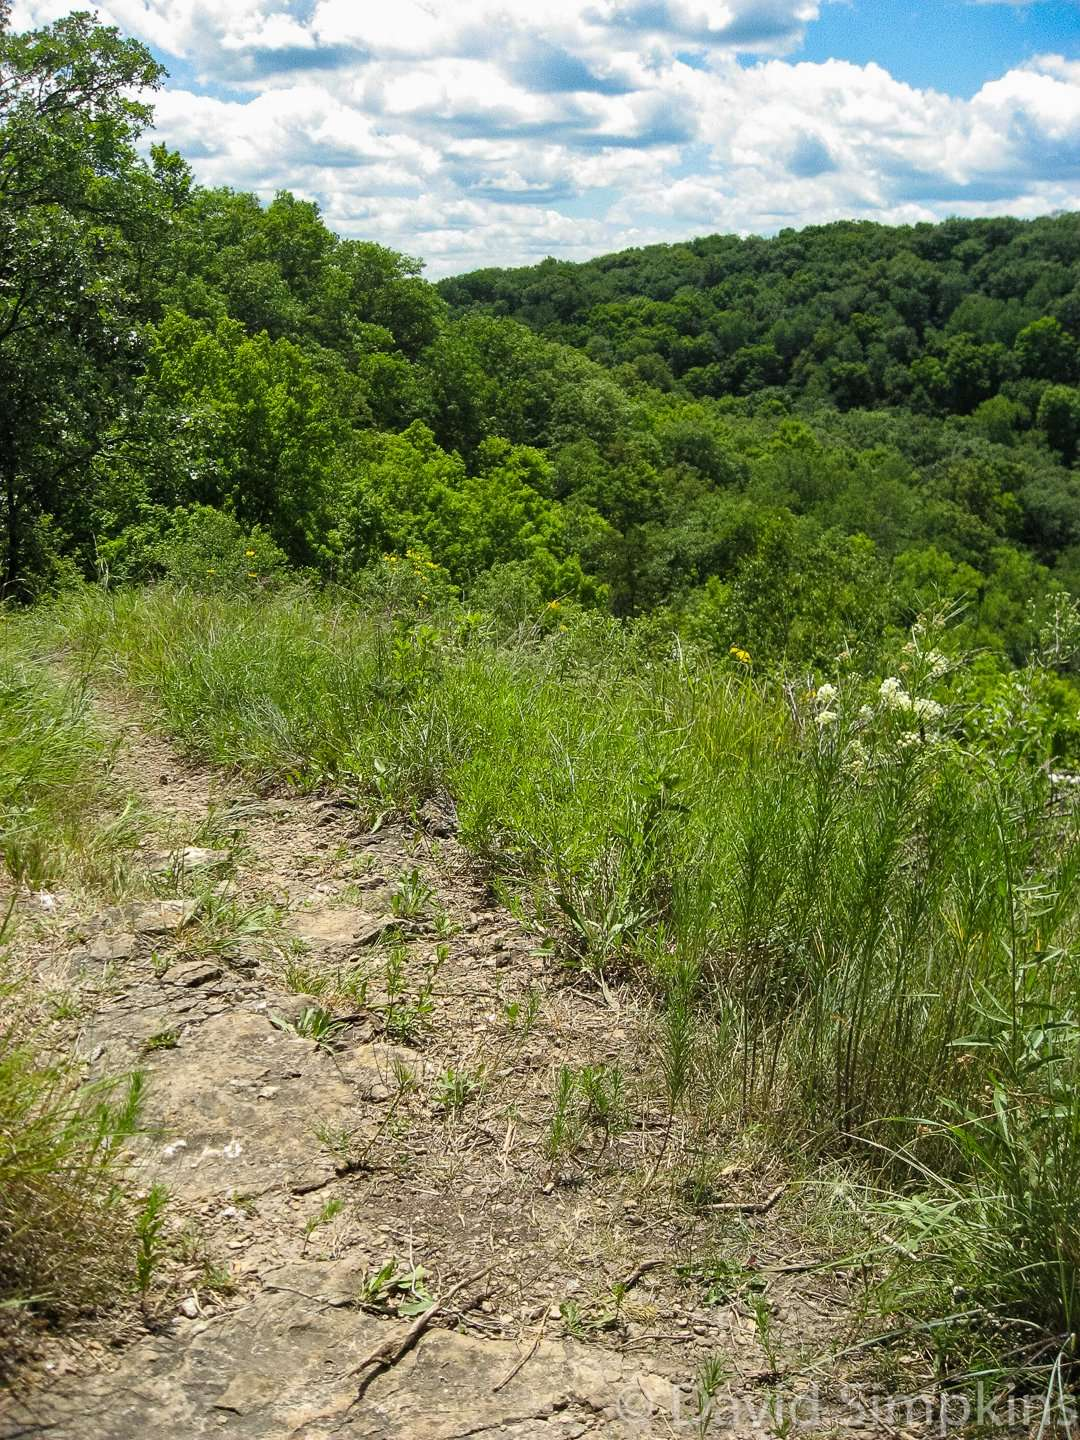 Scenic views of the valley from atop the bluffs at Beaver Creek Valley State Park